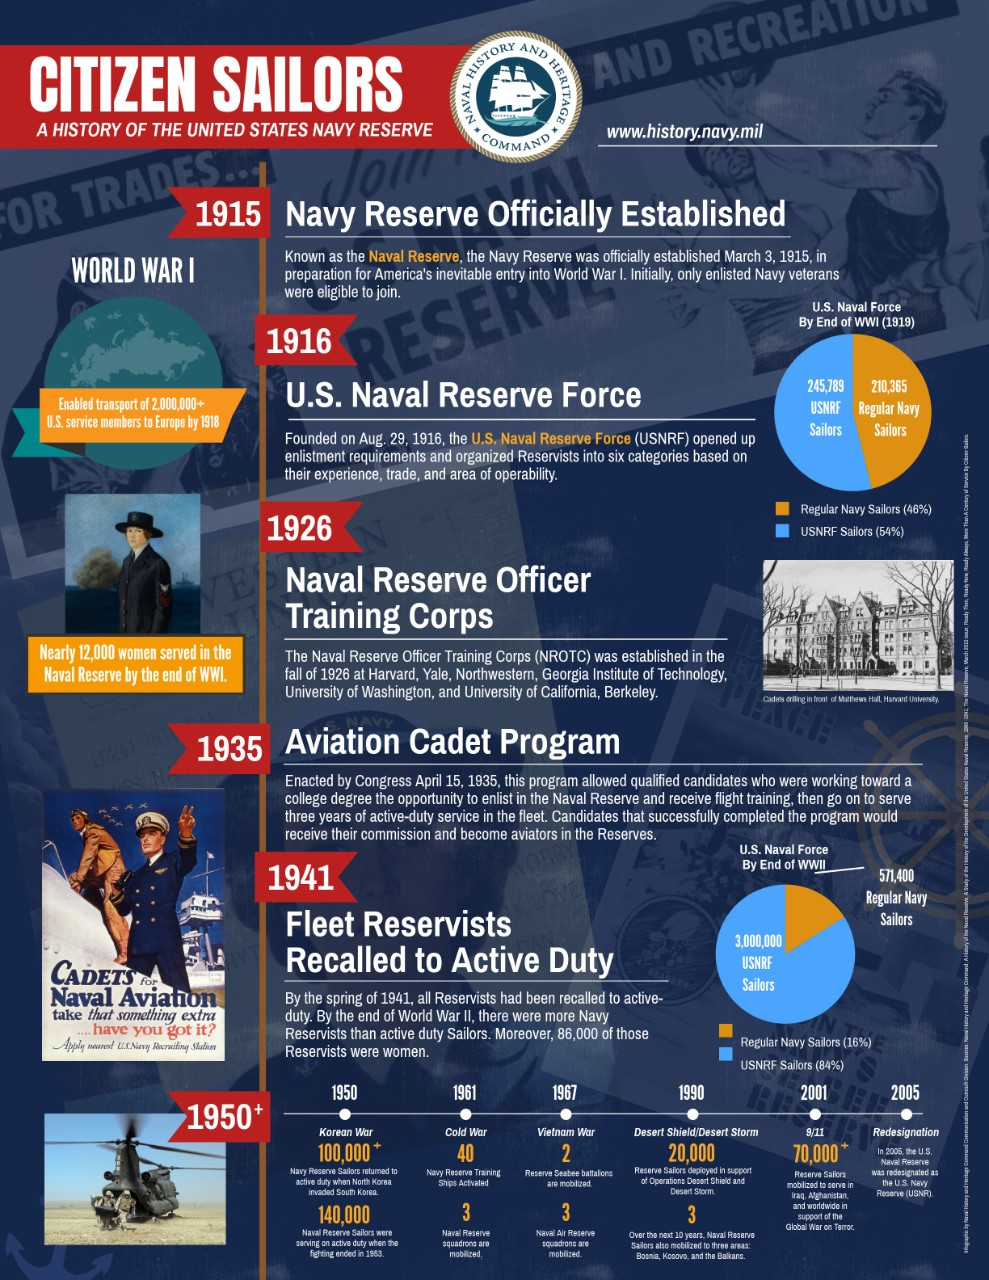 History of the U.S. Navy Reserve